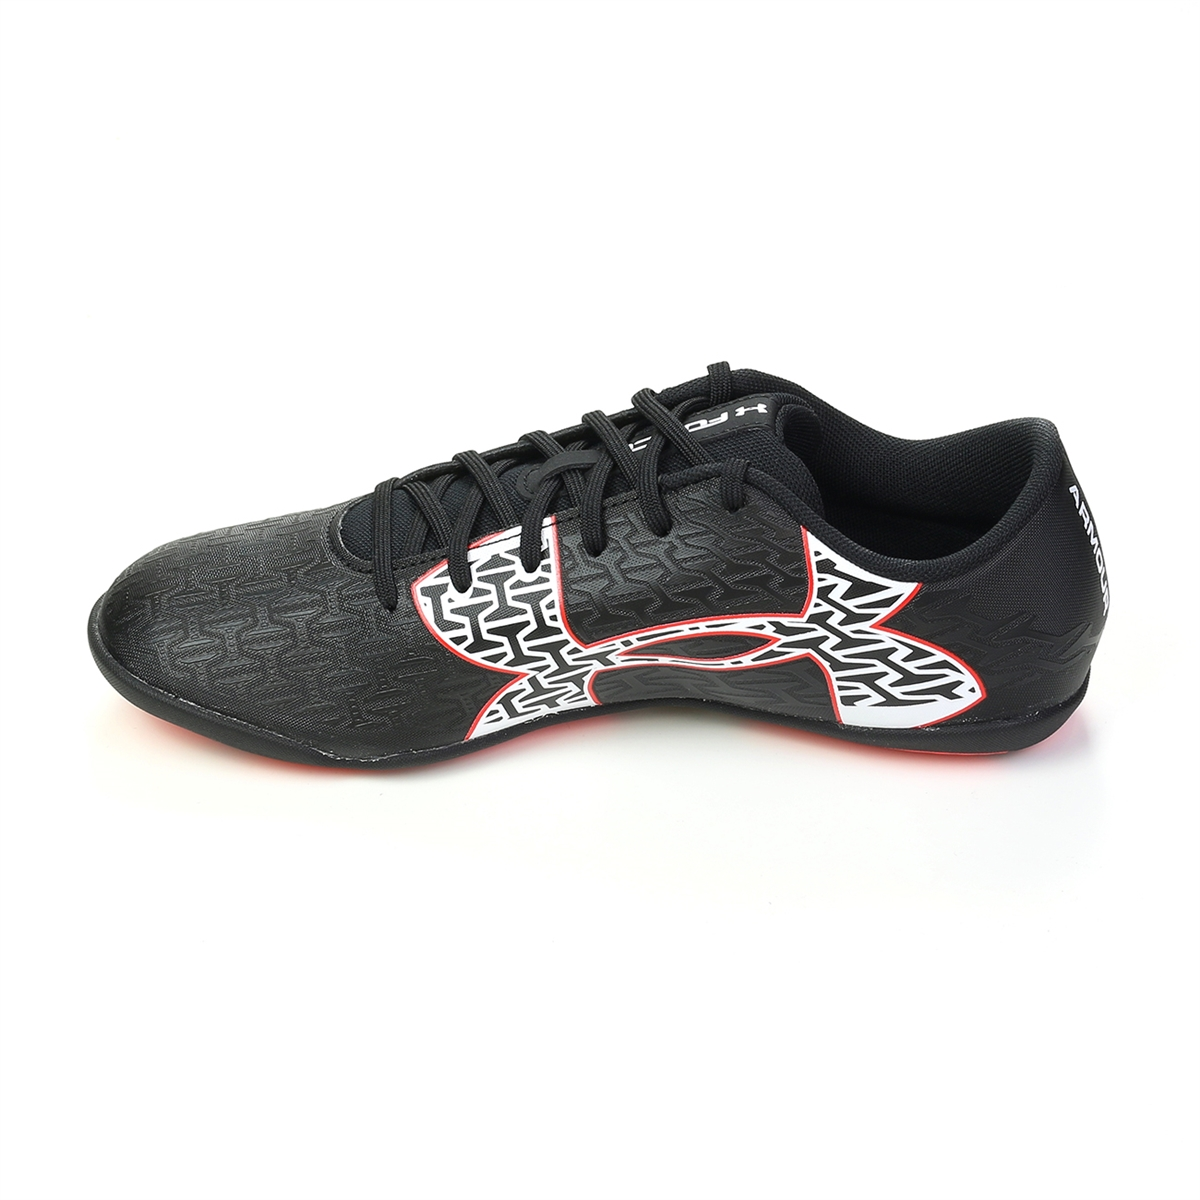 Cheap under armour indoor shoes Buy